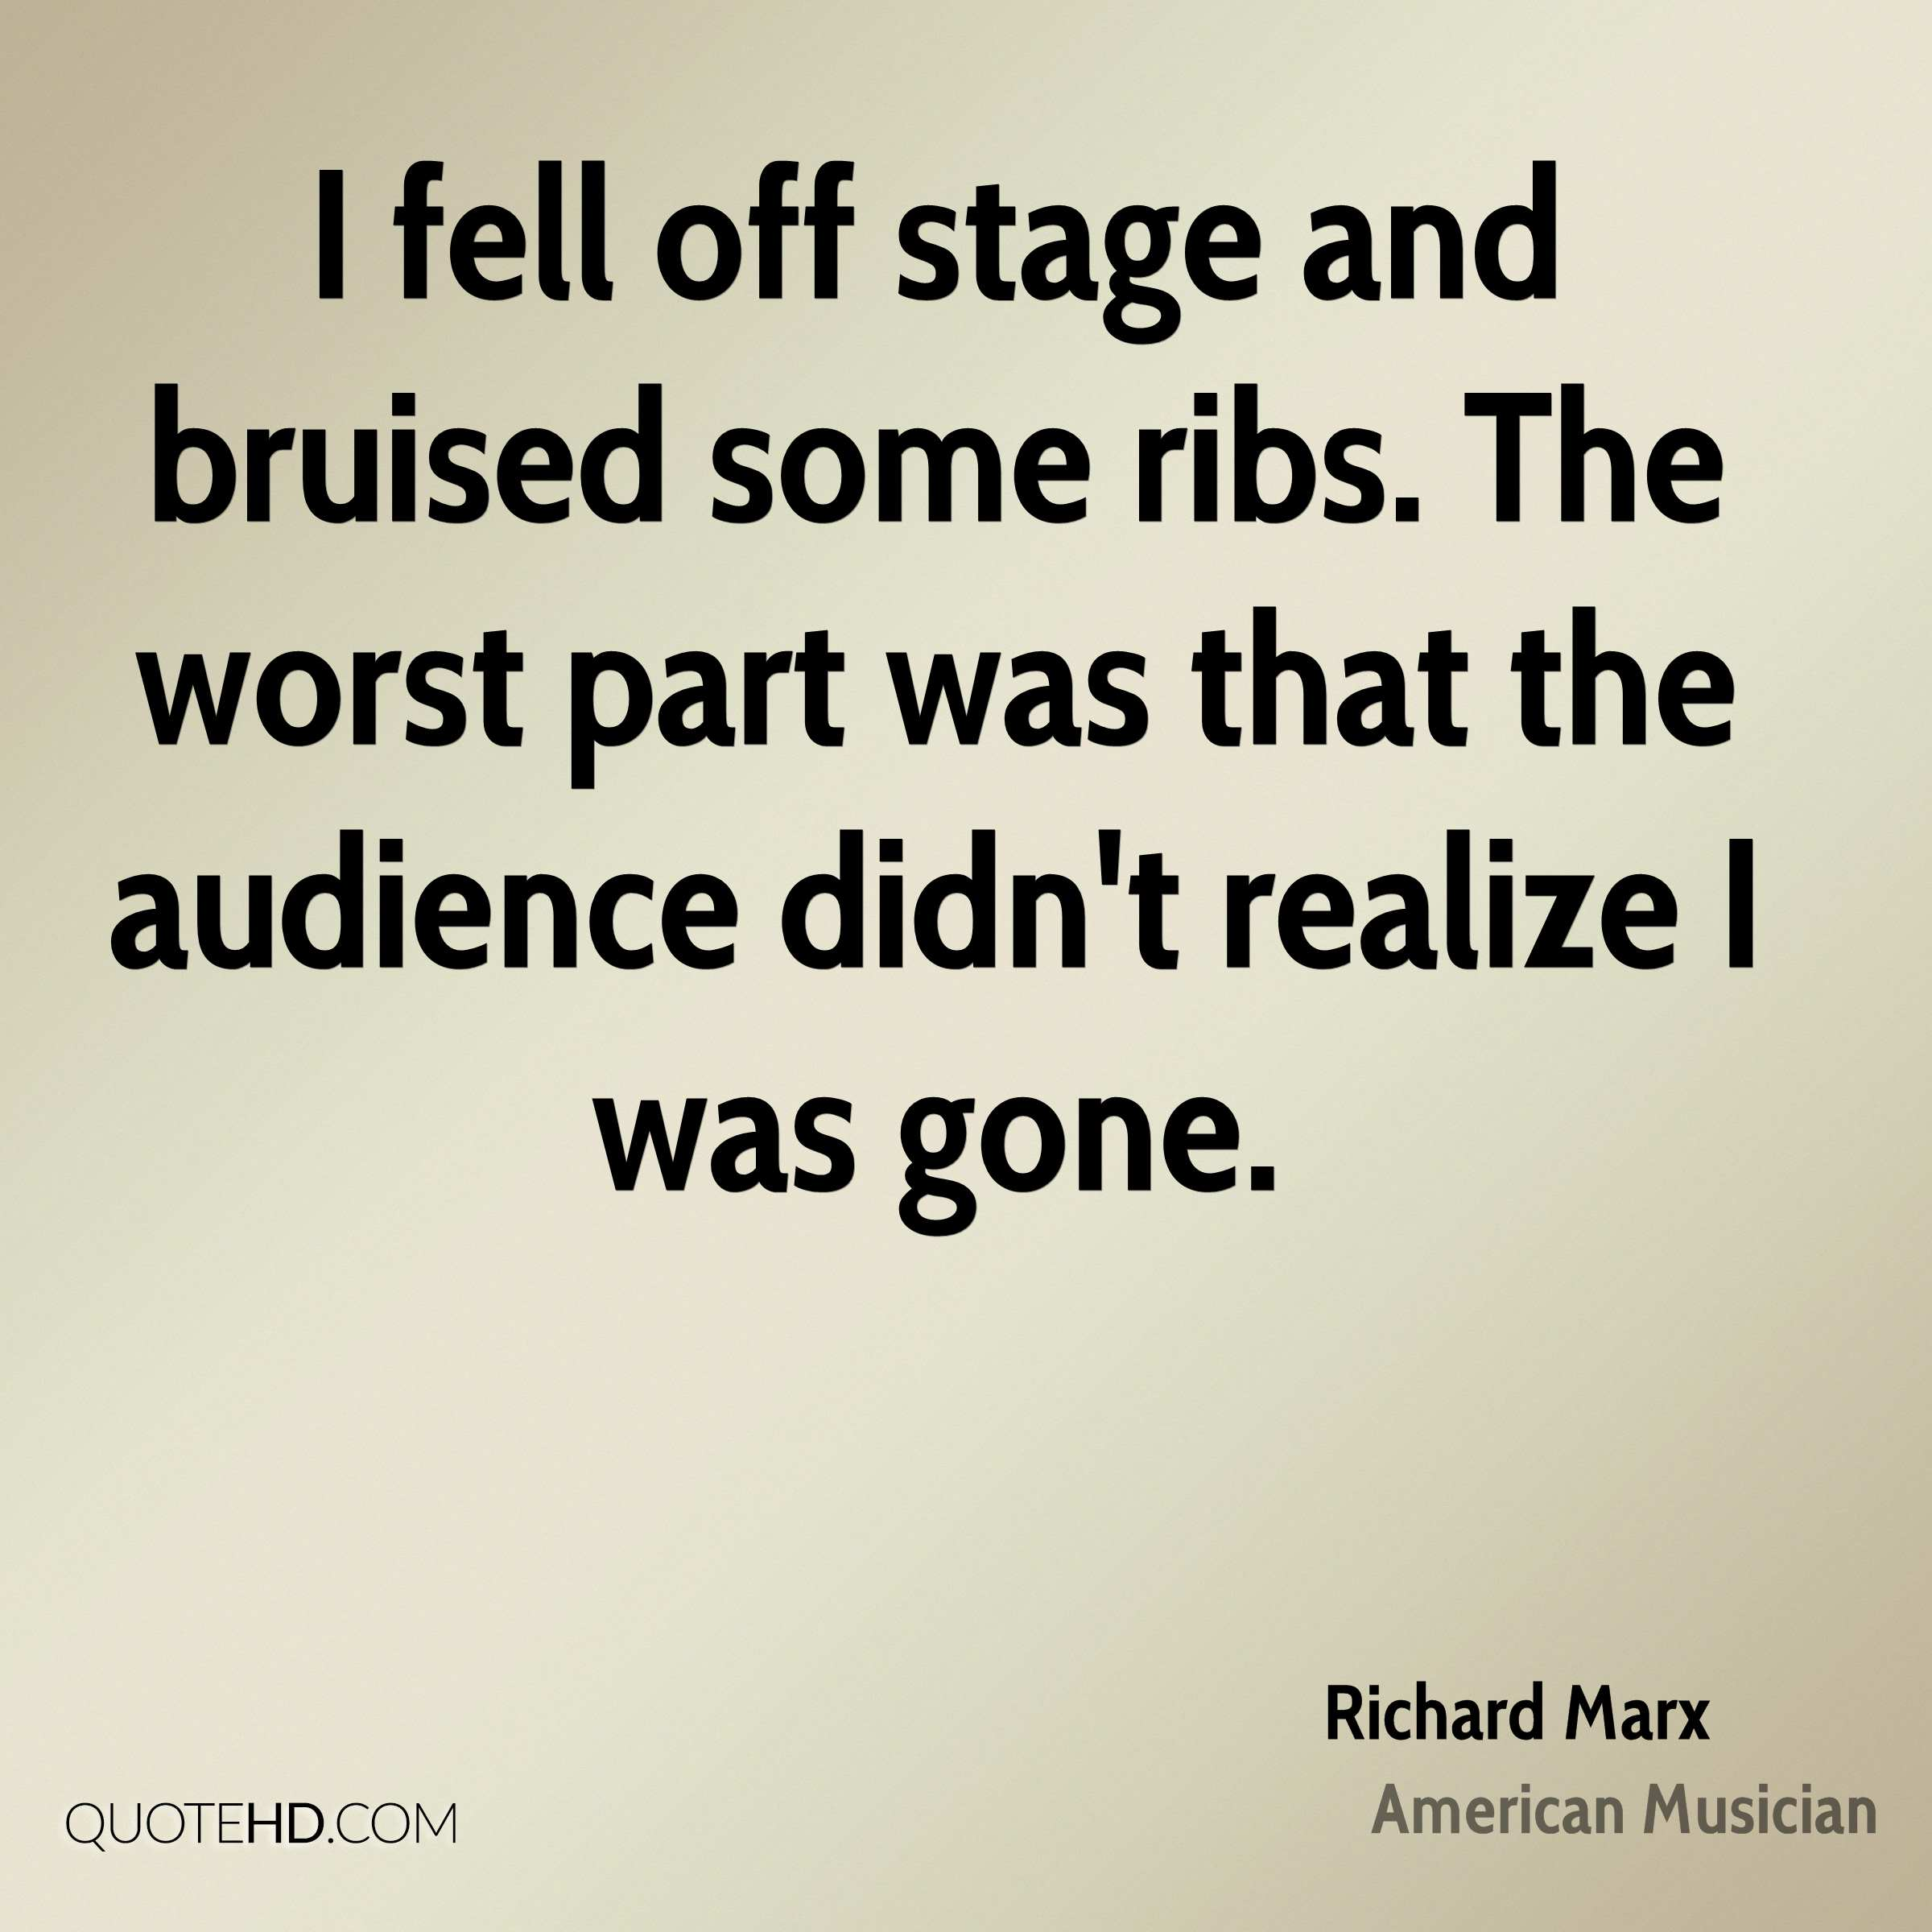 I fell off stage and bruised some ribs. The worst part was that the audience didn't realize I was gone.